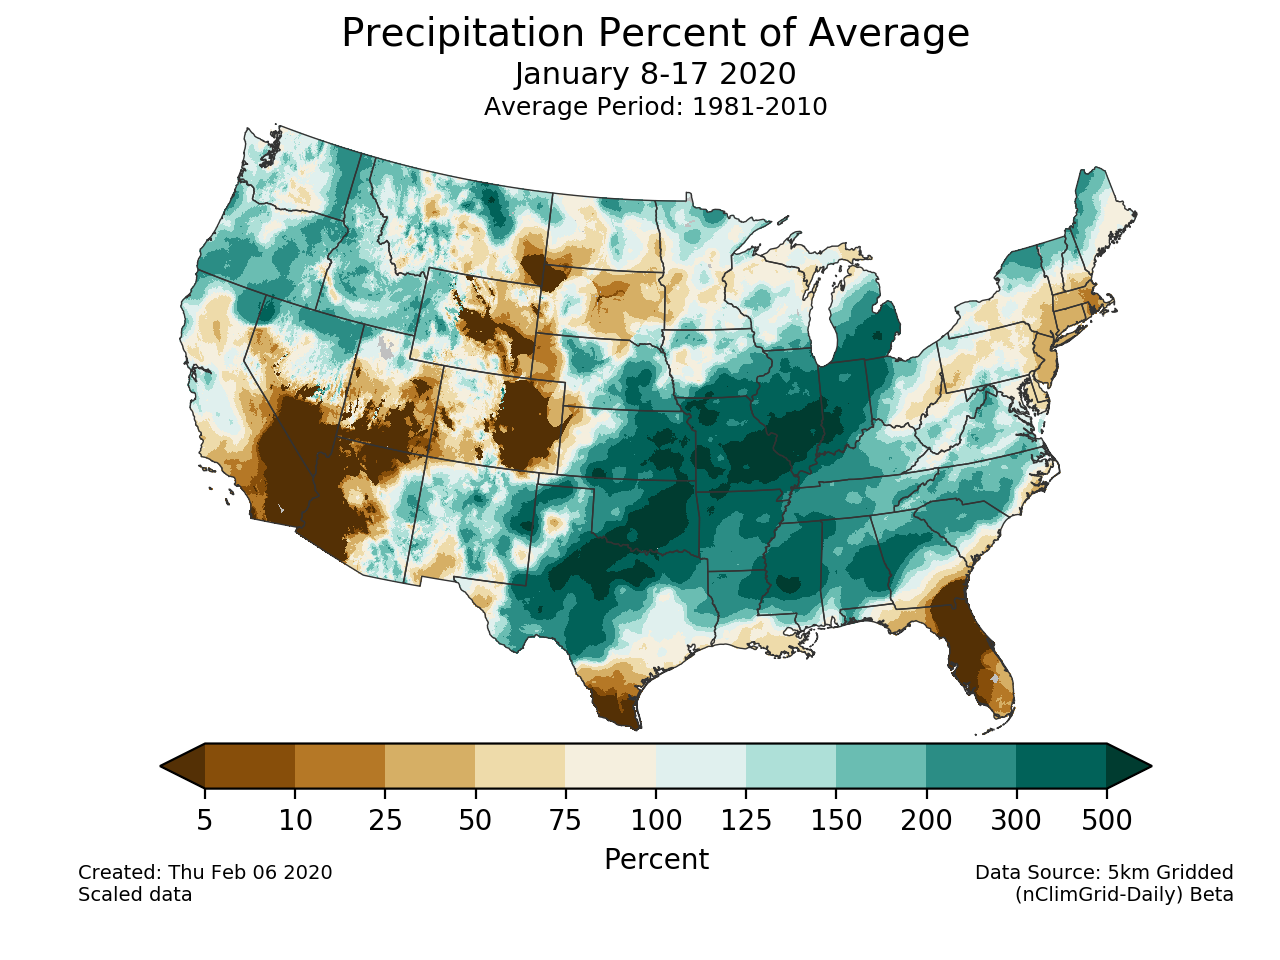 Precipitation anomalies (percent of normal) for the CONUS for January 8-17 2020